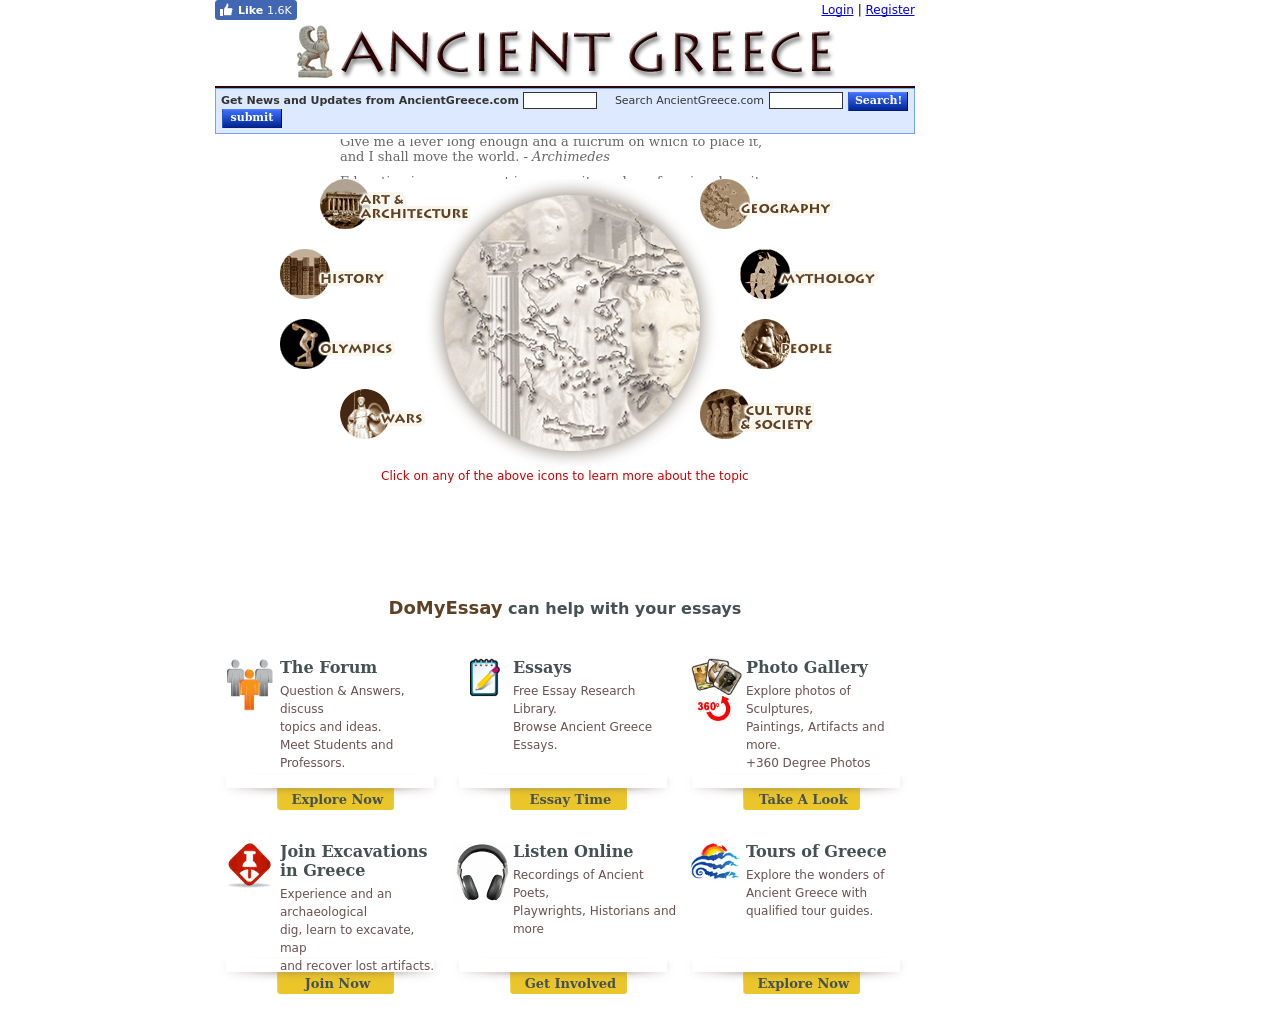 Ancient-Greece-Advertising-Reviews-Pricing